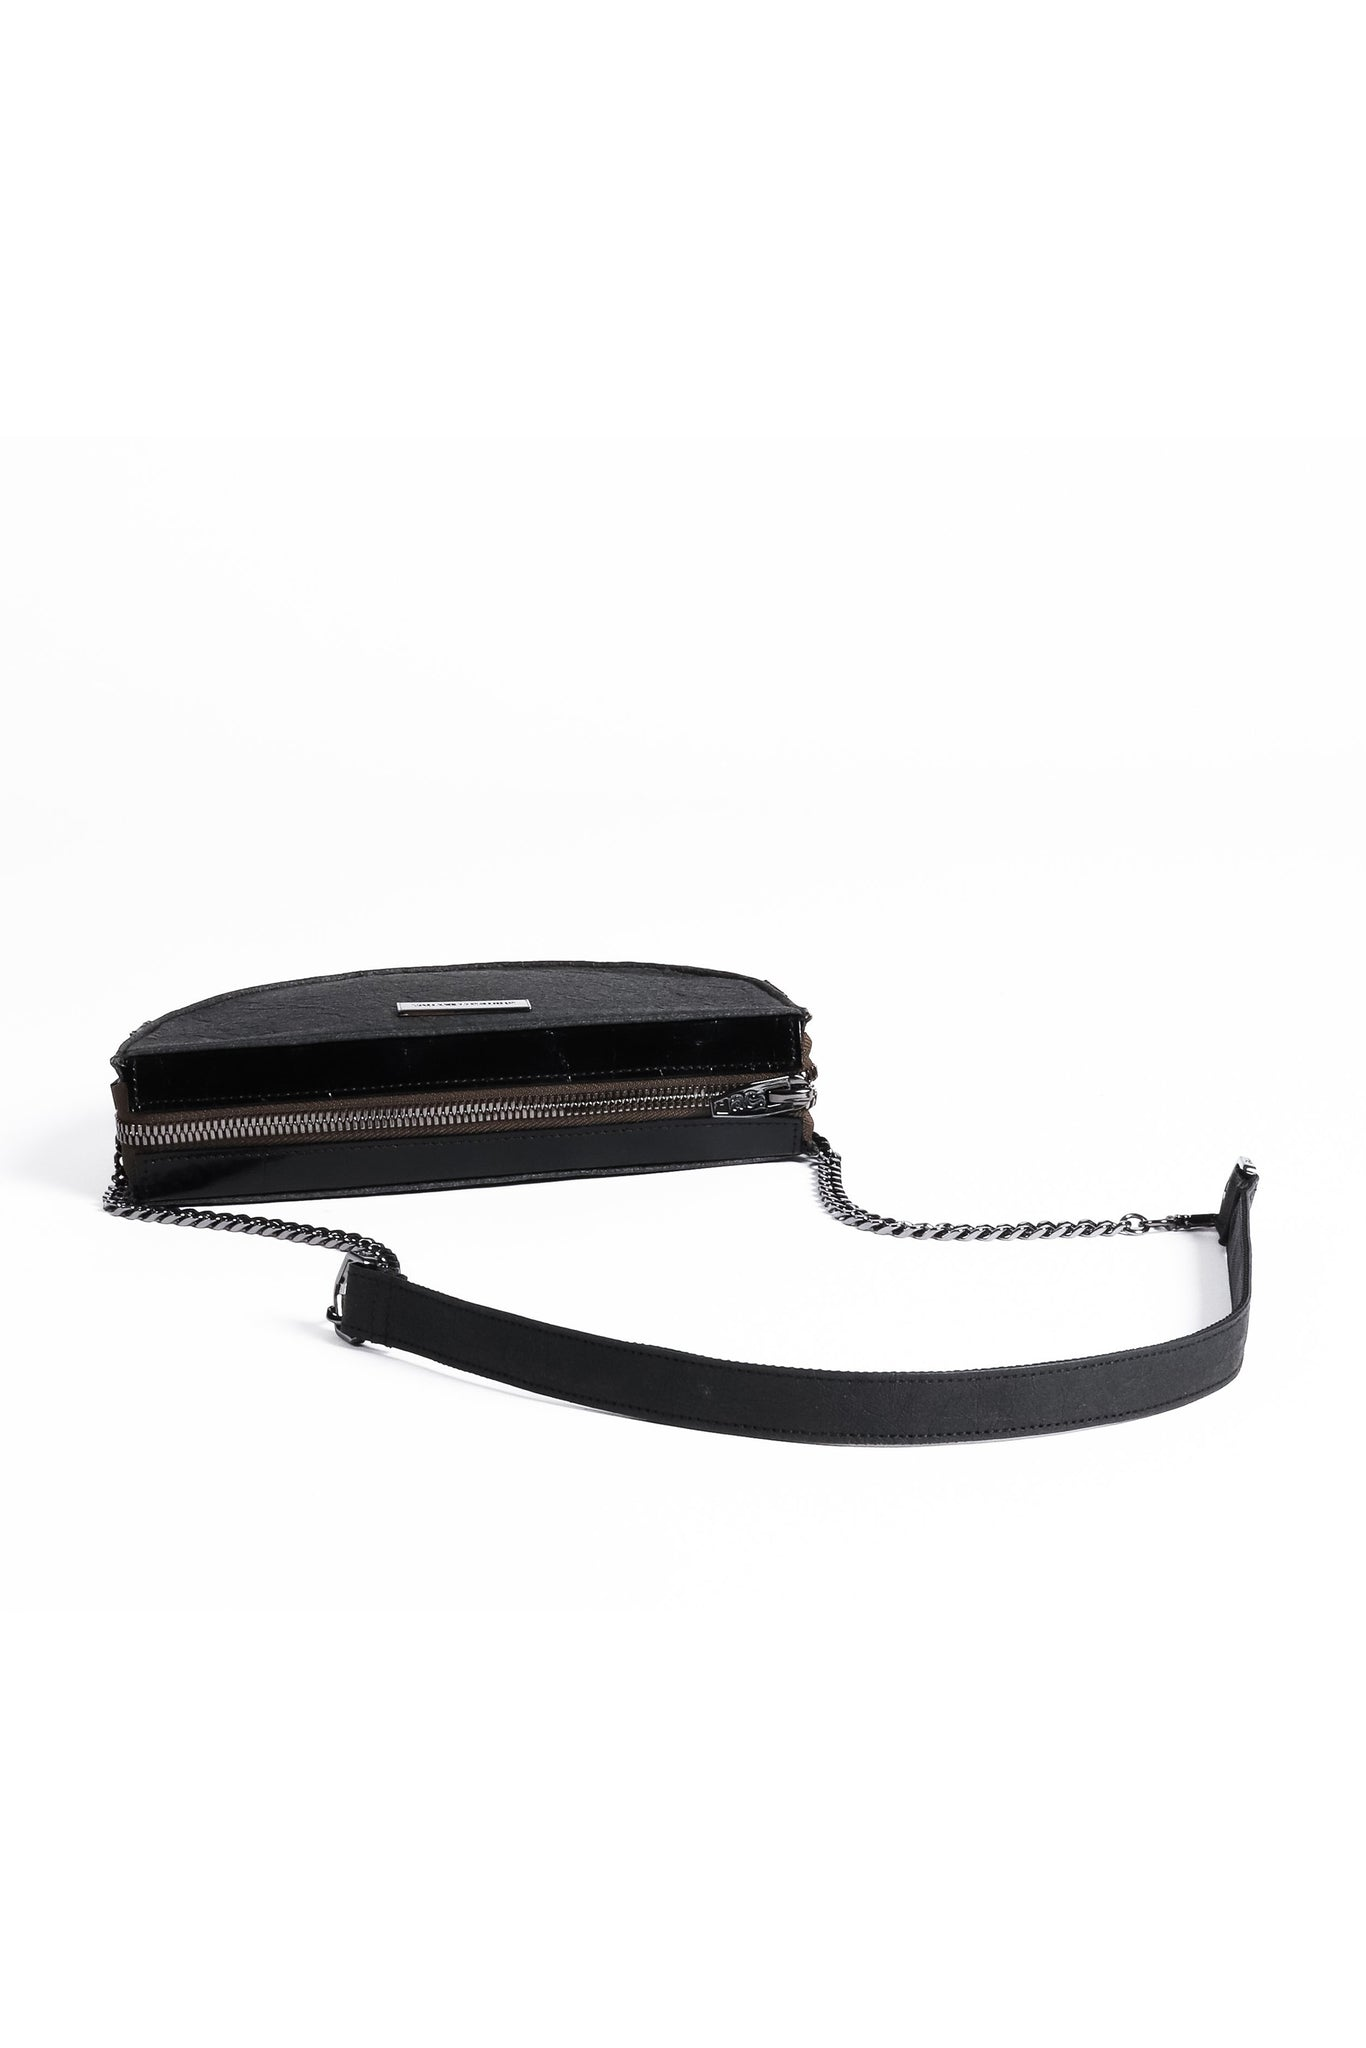 Halfmoon Mini Clutch - Smoke